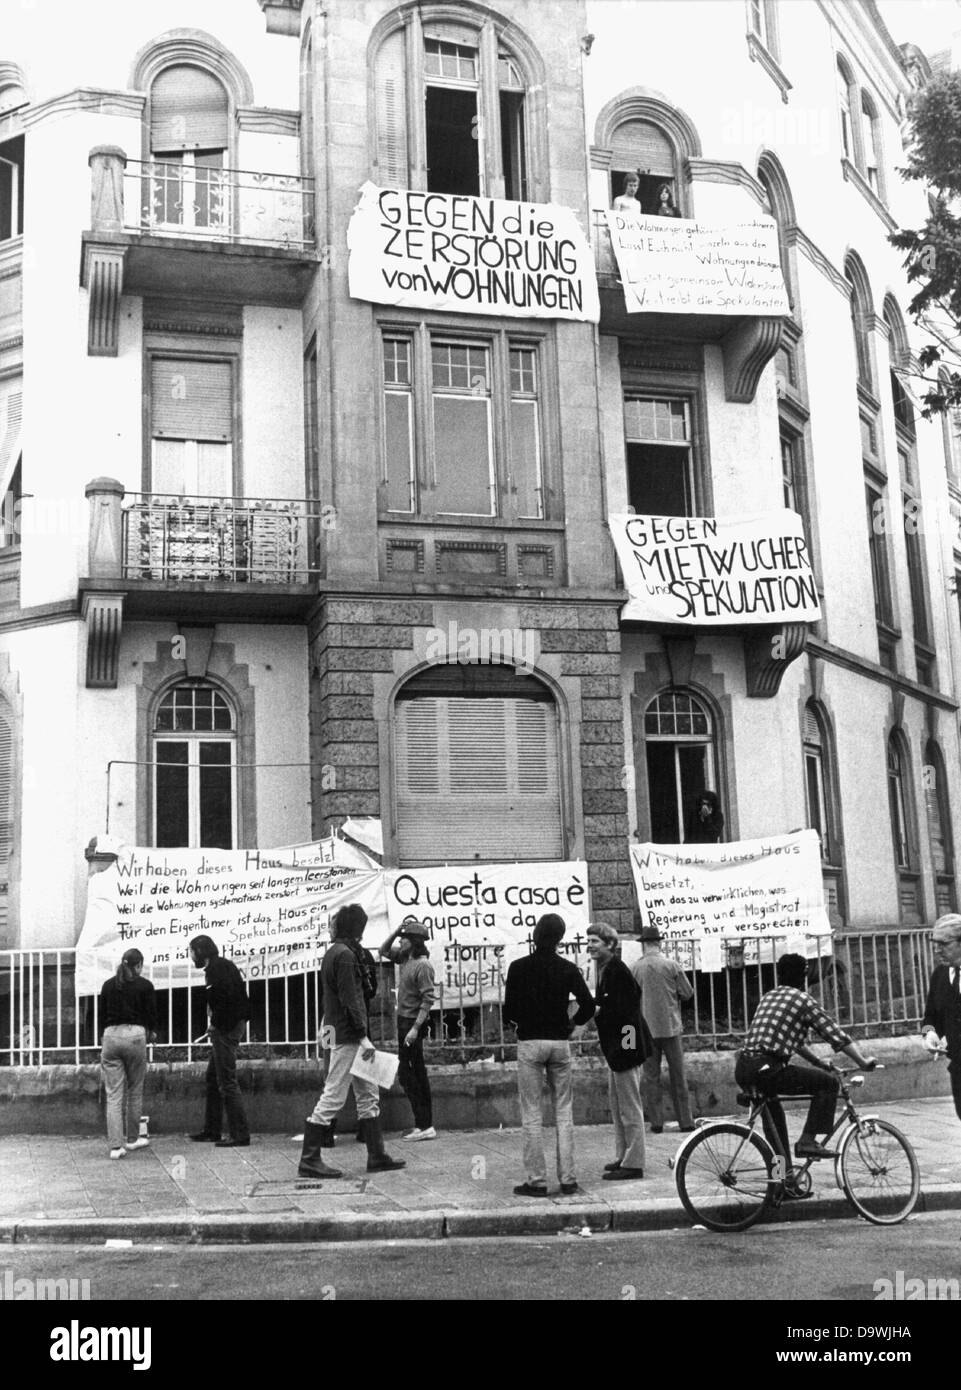 Len Frankfurt apprentices students and members of a collective squatted